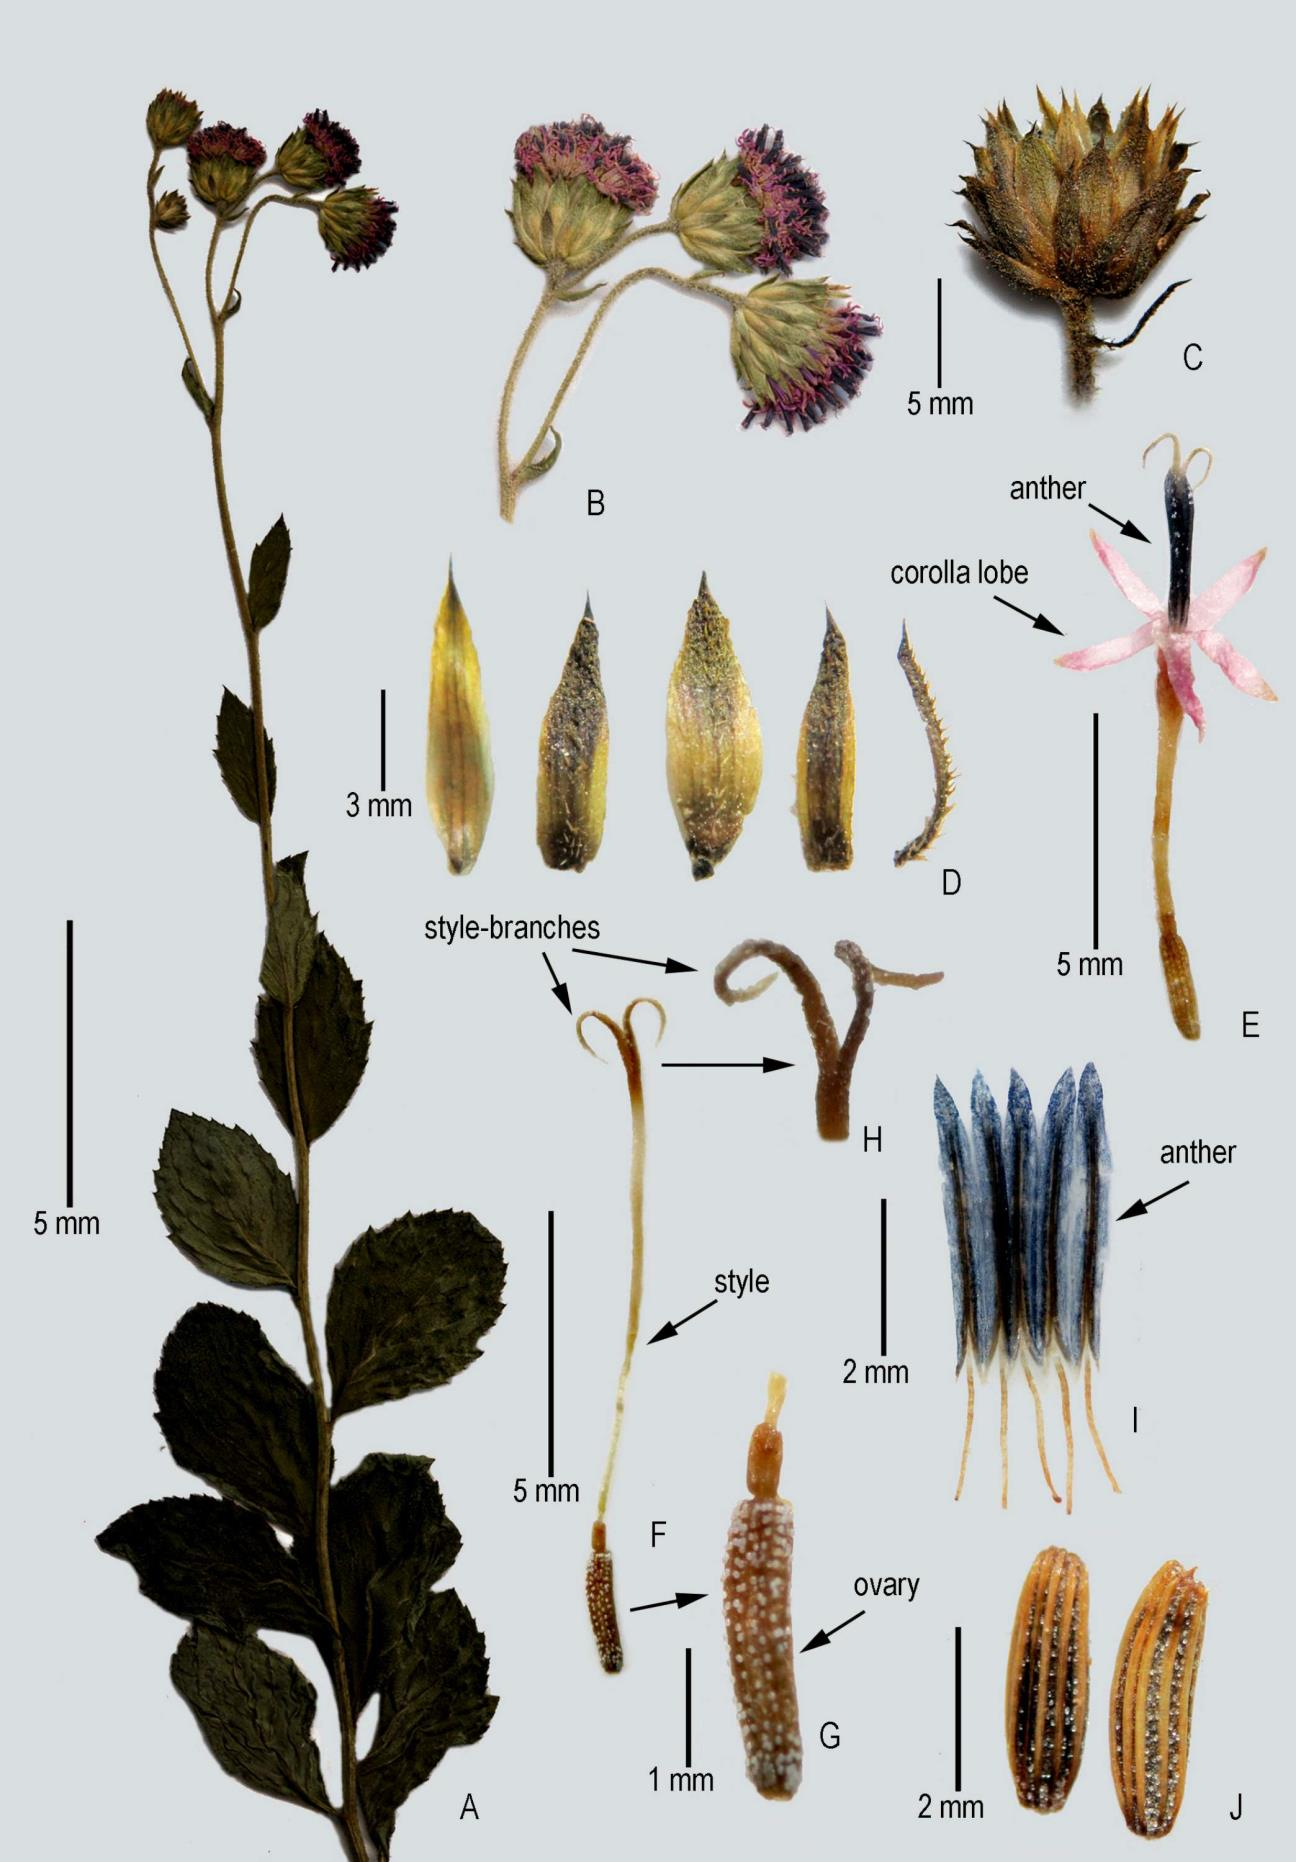 Adenoon indicum Dalzell: A, Habit; B, Heads; C, Involucre; D, Phyllaries; E, Floret; F, Gynoecium; G, Close-up of ovary; H, Close-up of style apex; I, Stamens; J, Achenes